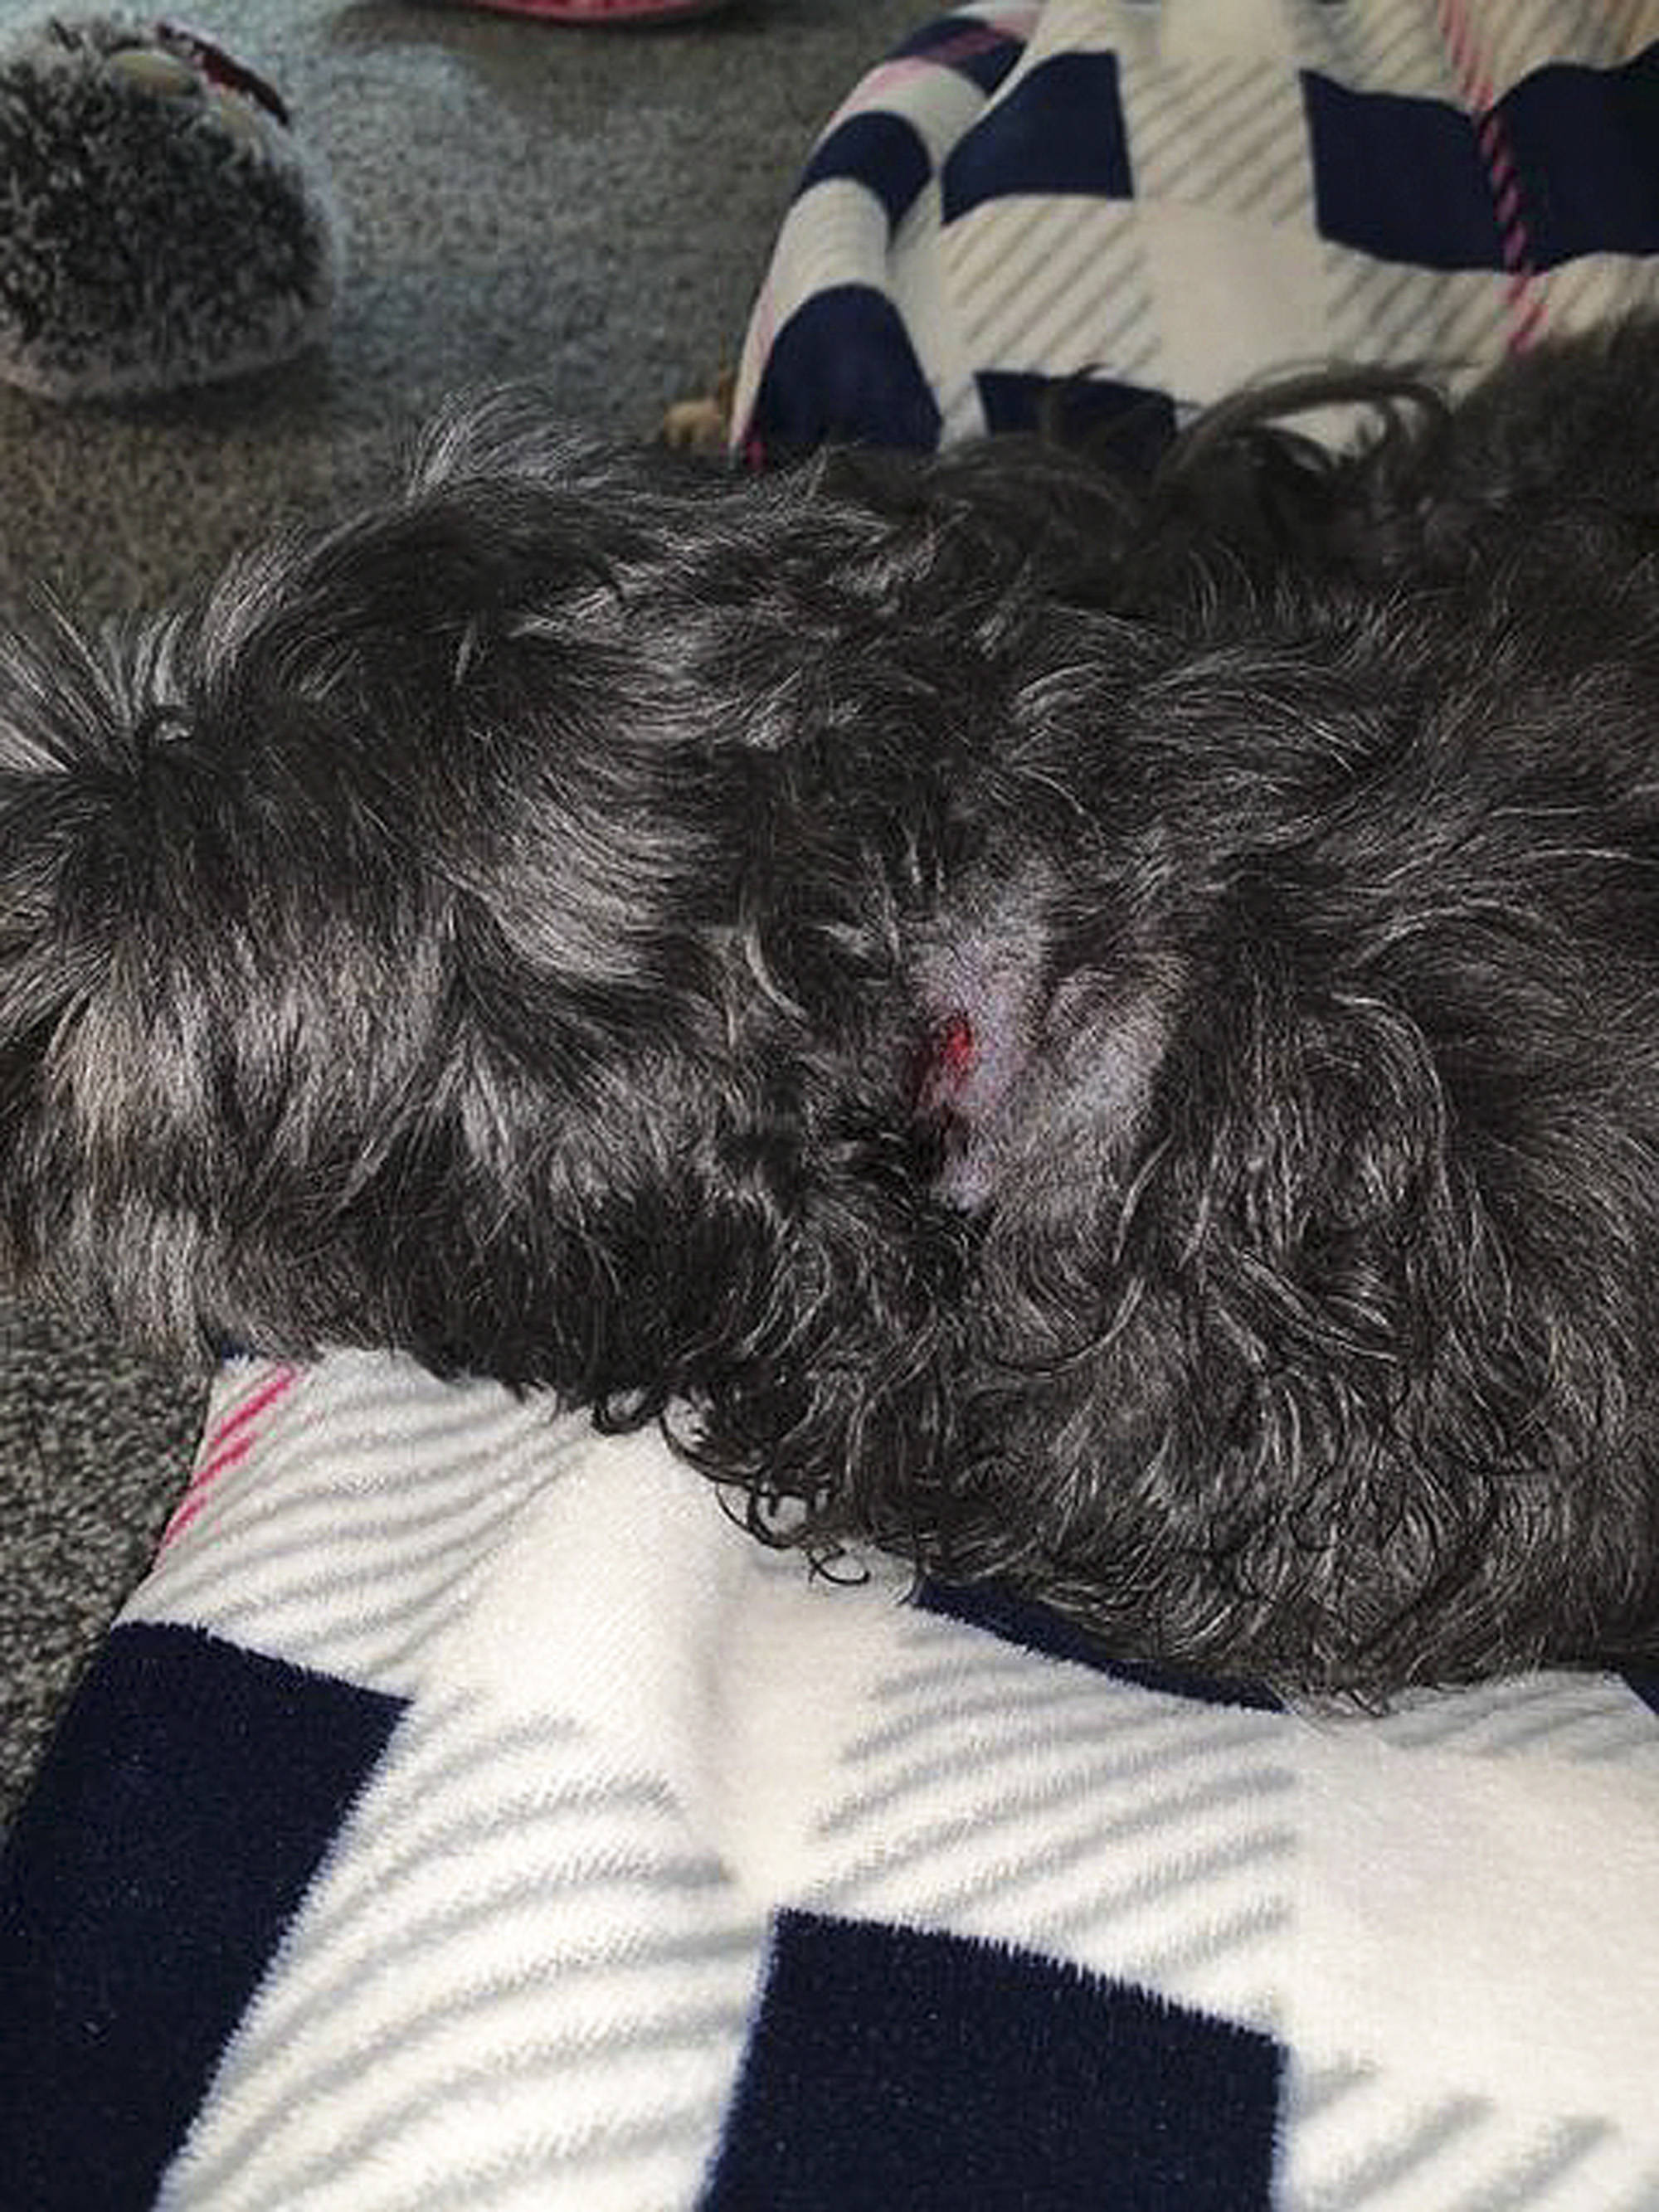 Jeanine Armillotta's dog Quila was attacked and injured by a pit bull at Canoe Beach on Aug. 31. (Contributed)